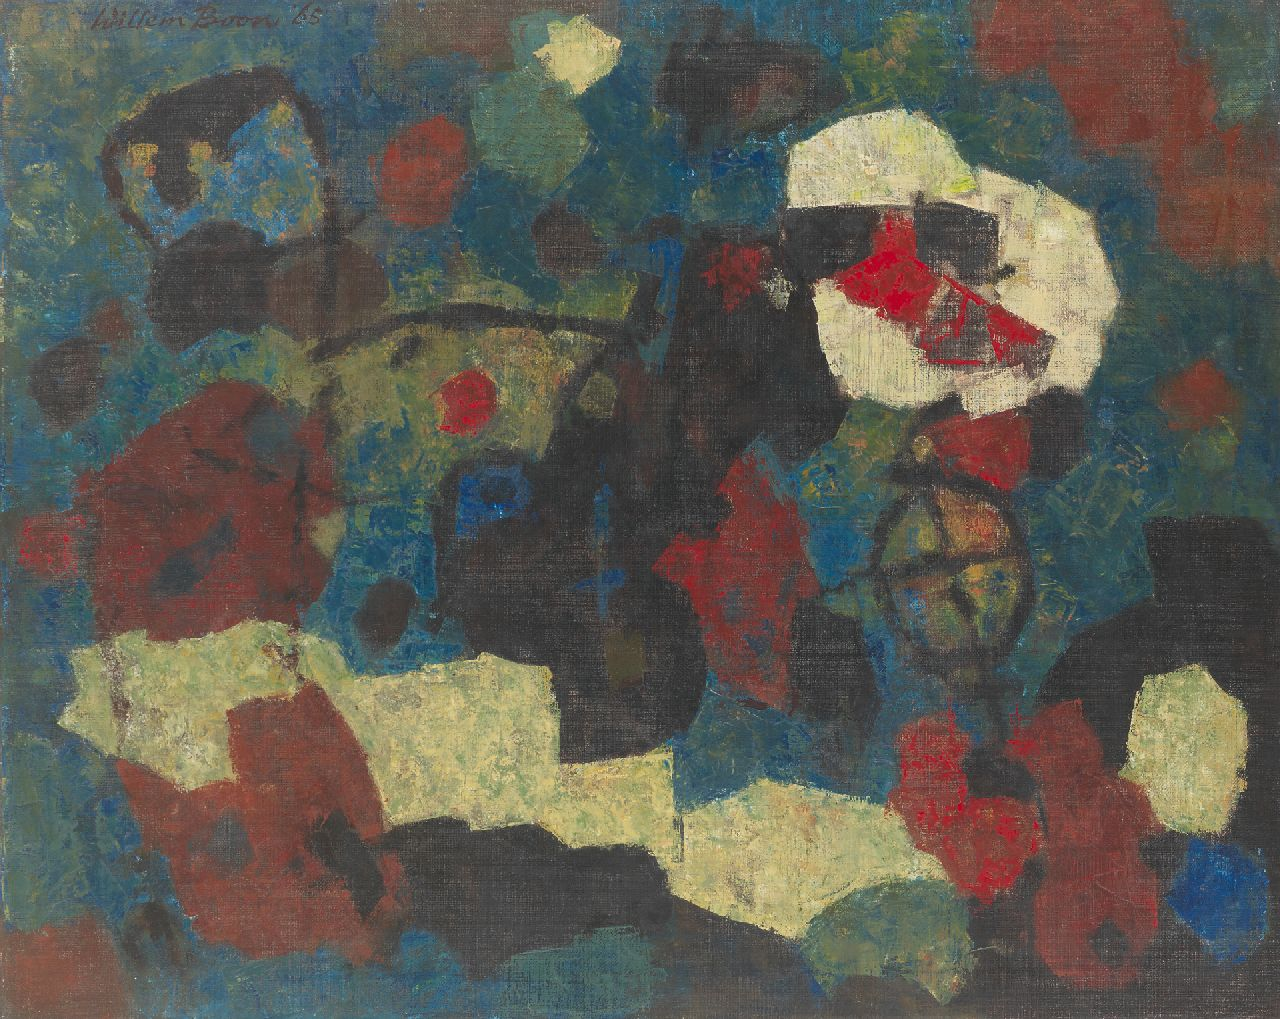 Willem Boon | Kompositie '65, oil on canvas, 80.2 x 99.8 cm, signed u.l. and dated '65